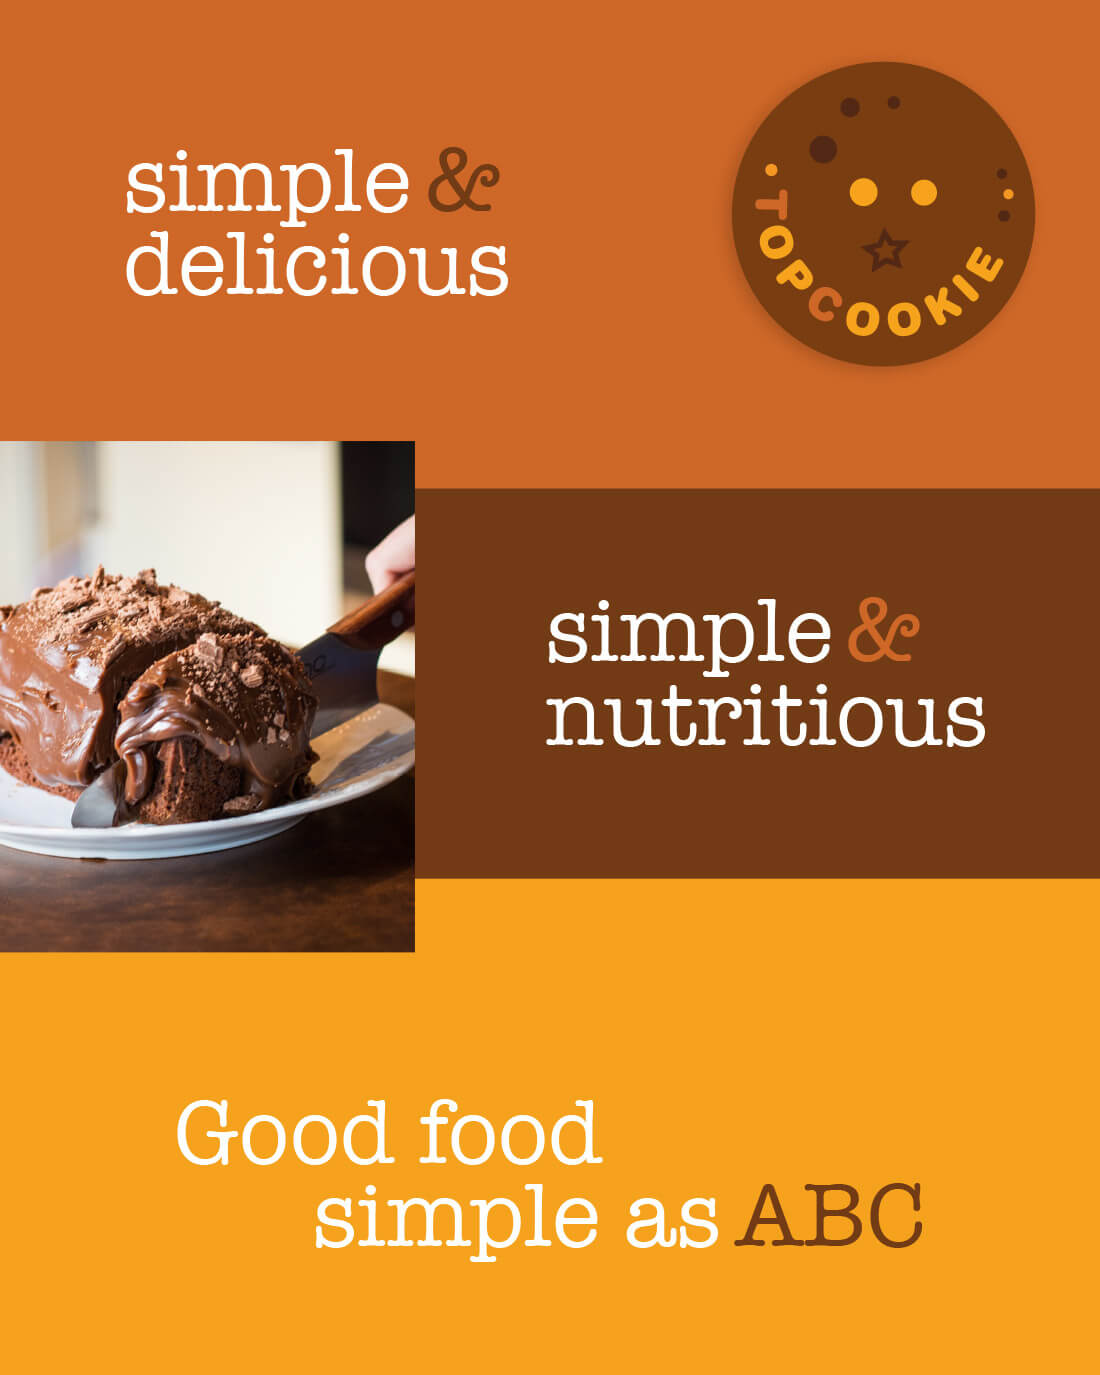 Alphabake Cookery messaging, simple and delicious, simple and nutritious, Good food simple as ABC